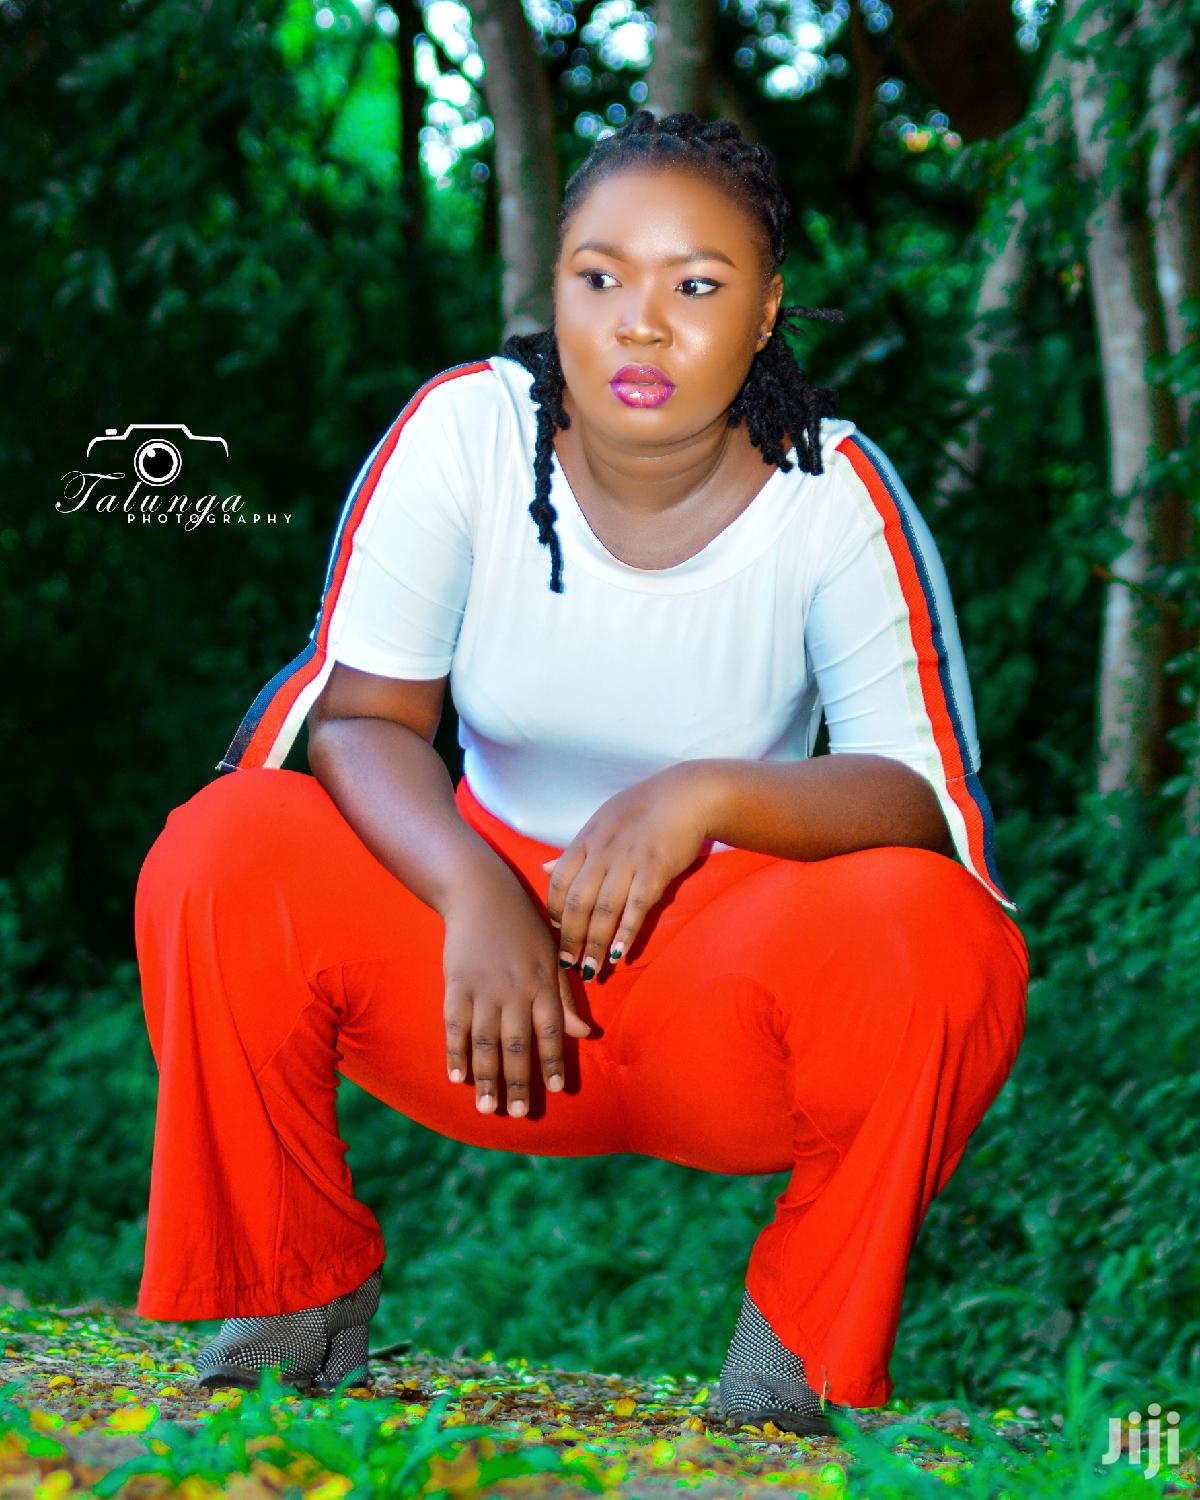 Photography and Videography | Photography & Video Services for sale in Ilemela, Mwanza Region, Tanzania